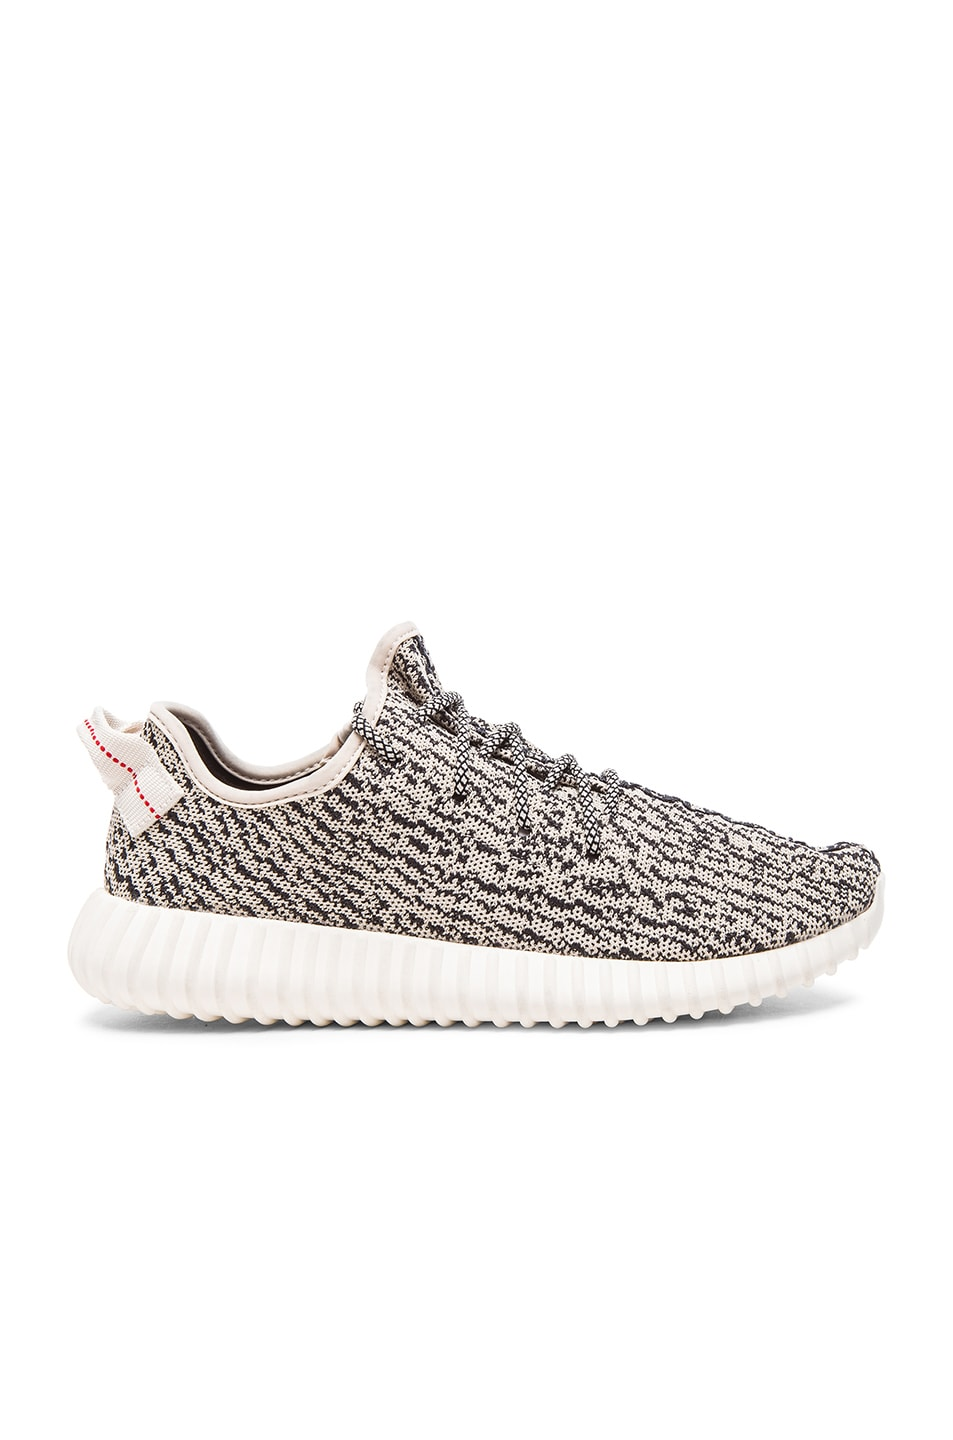 d58537efad9bc Image 2 of Kanye West x Adidas Originals Yeezy Boost 350 in Turtledove